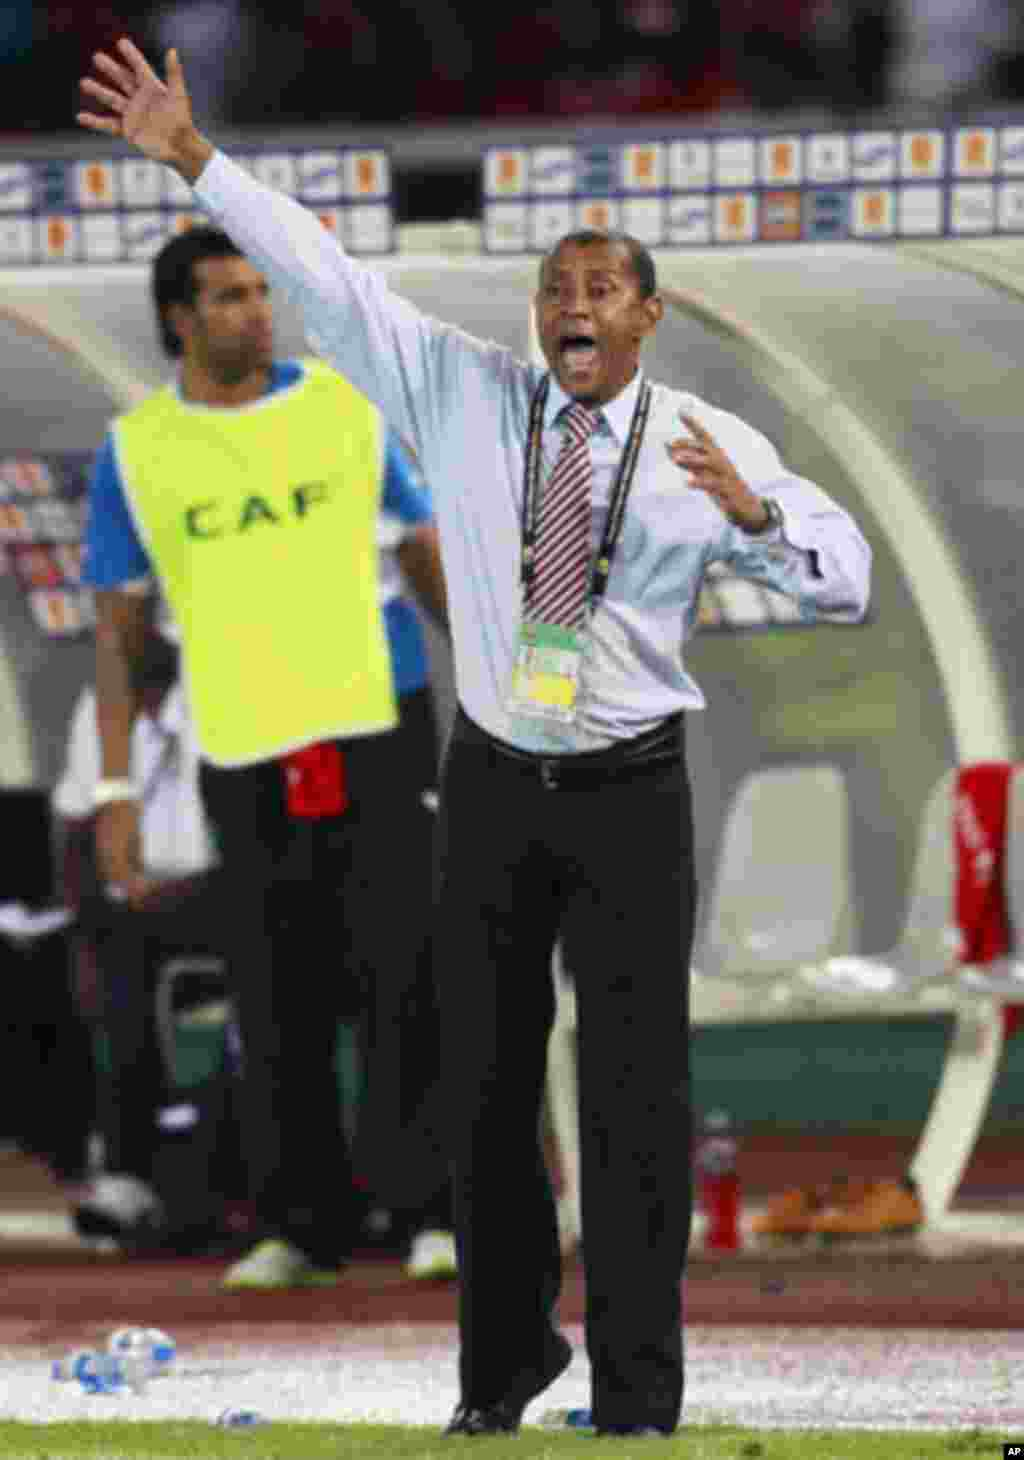 Equatorial Guinea's head coach Paulo of Brazil reactes during their African Cup of Nations Group A soccer match against Senegal at Estadio de Bata